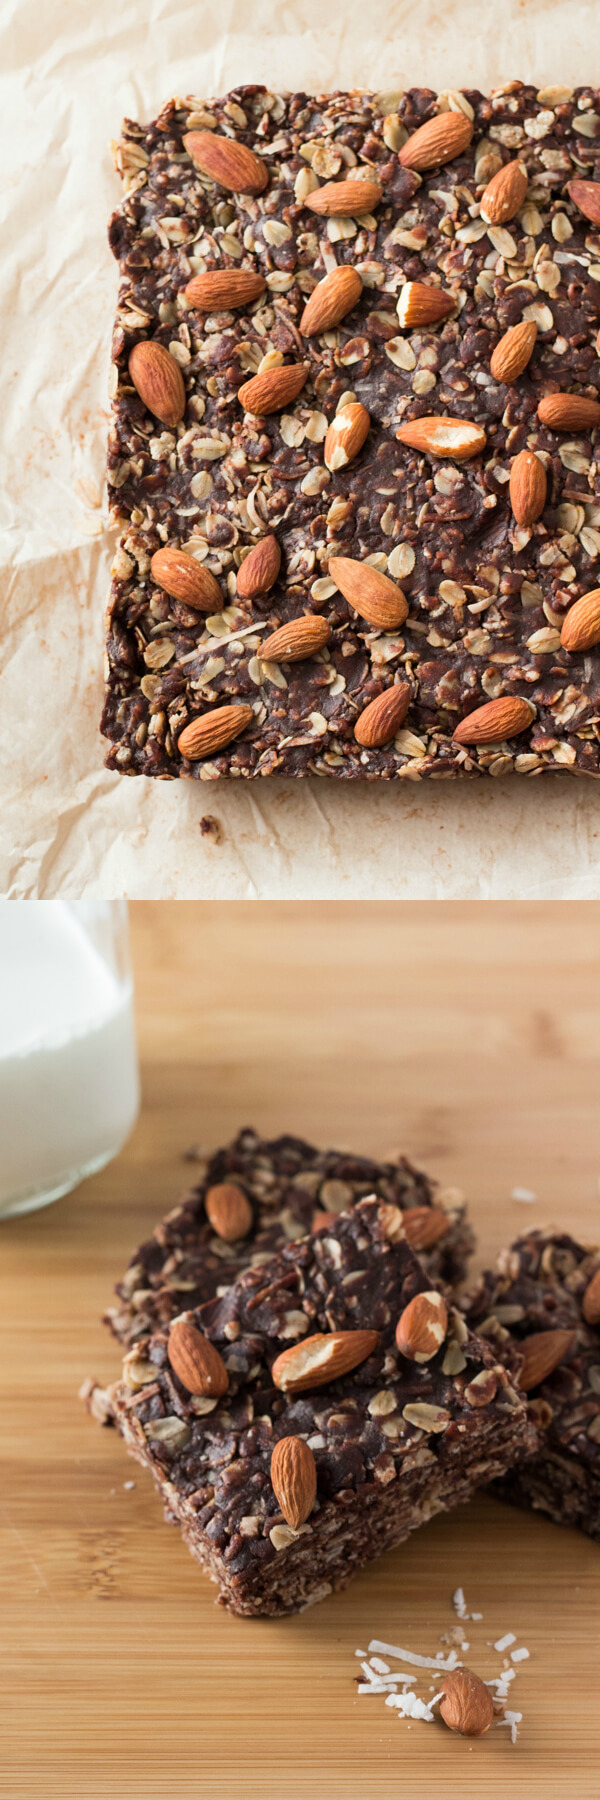 Almonds, coconut & chocolate come together in these delicious Almond Joy Granola Bars. Wholesome ingredients, gluten-free, vegan, super easy and totally addictive! www.justsotasty.com